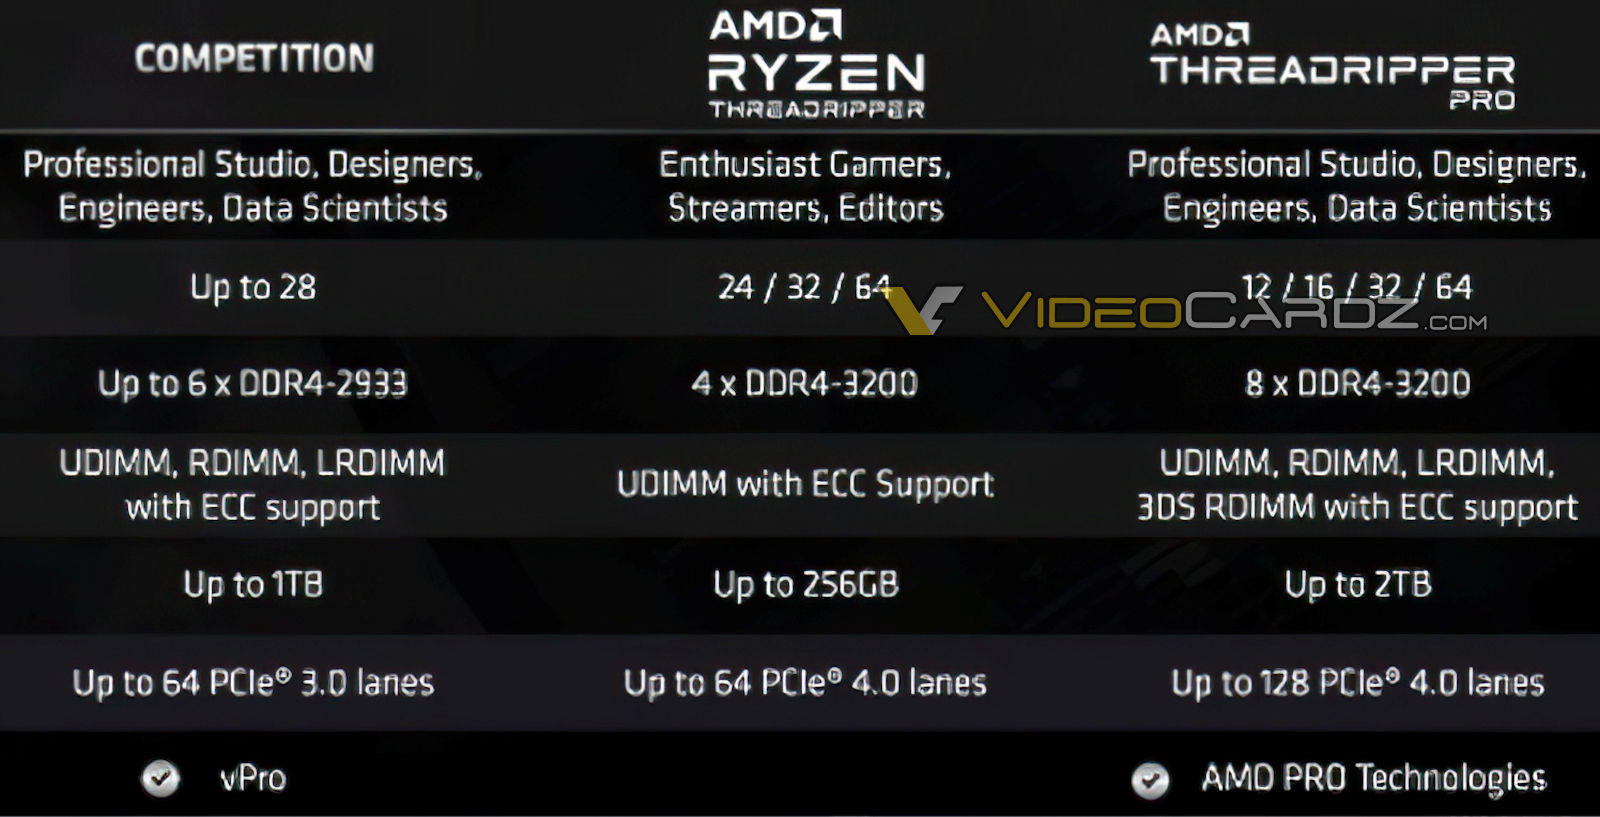 Amd Ryzen Threadripper Pro 3000 Cpu Family Official Specs Leak Out 3995wx Flagship With 64 Cores 128 Threads 8 Channel Ddr4 2 Tb Memory Support